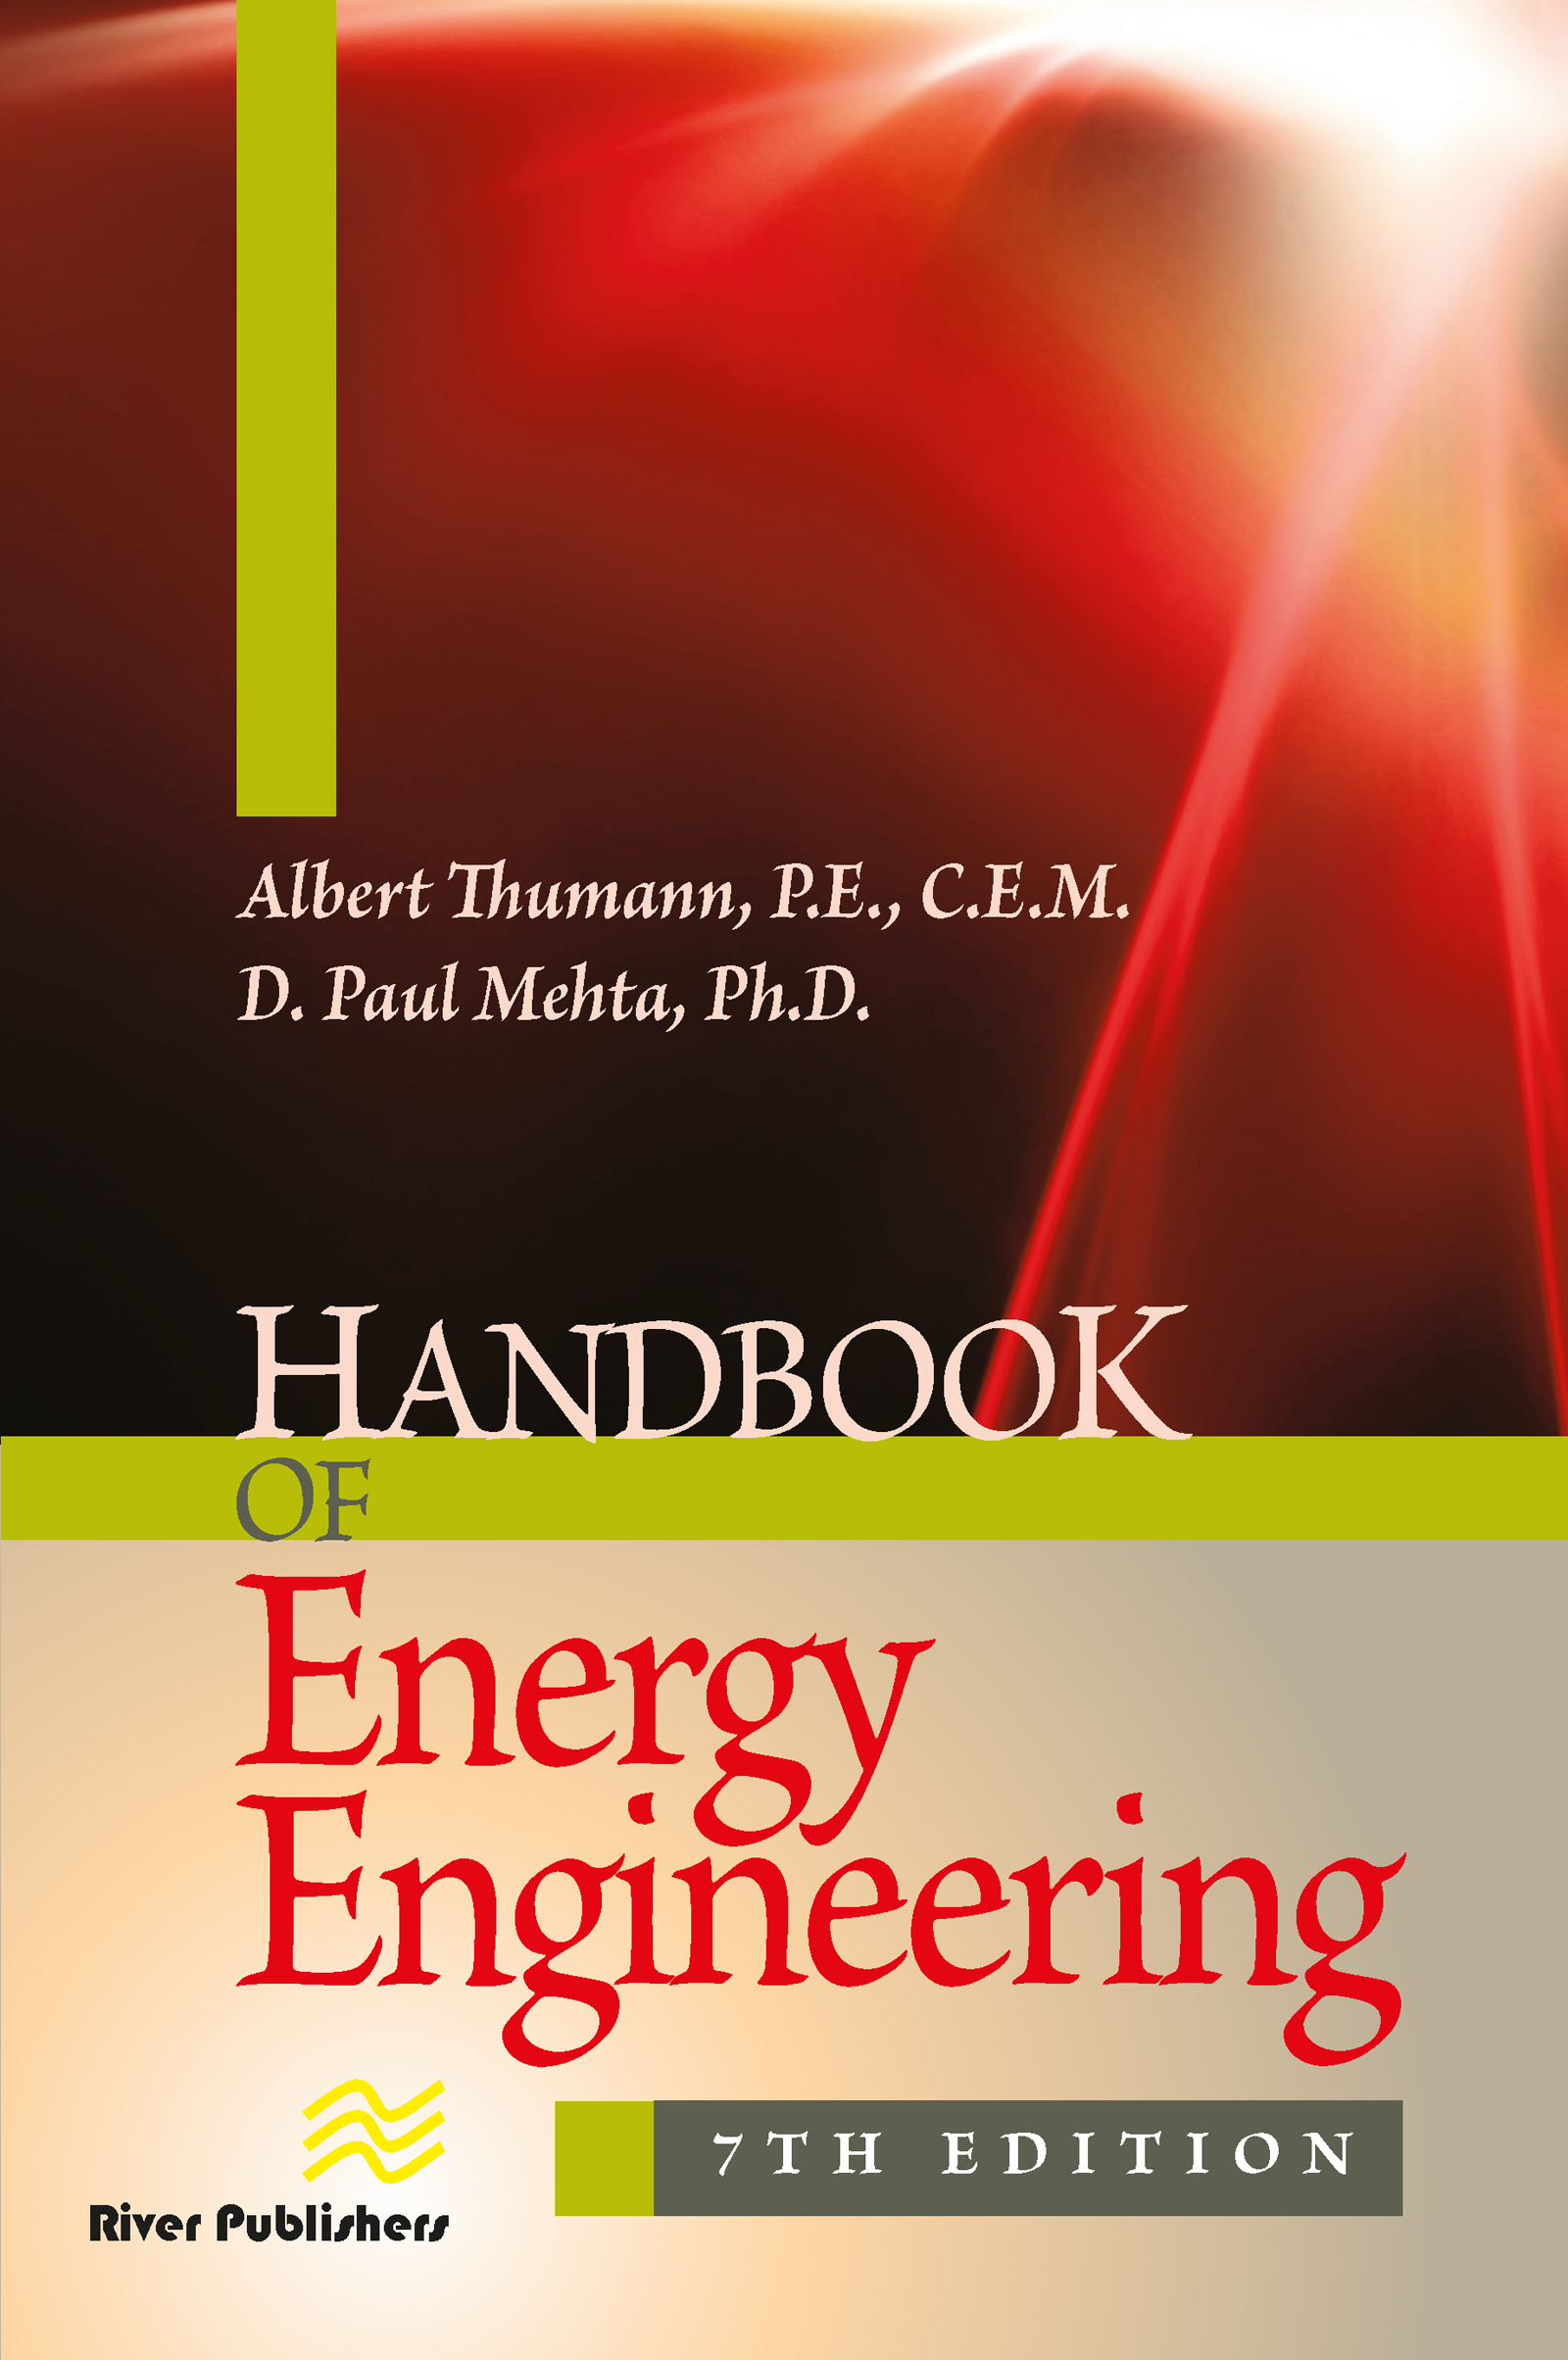 Handbook of Energy Engineering, Seventh Edition: 7th Edition (Hardback) book cover